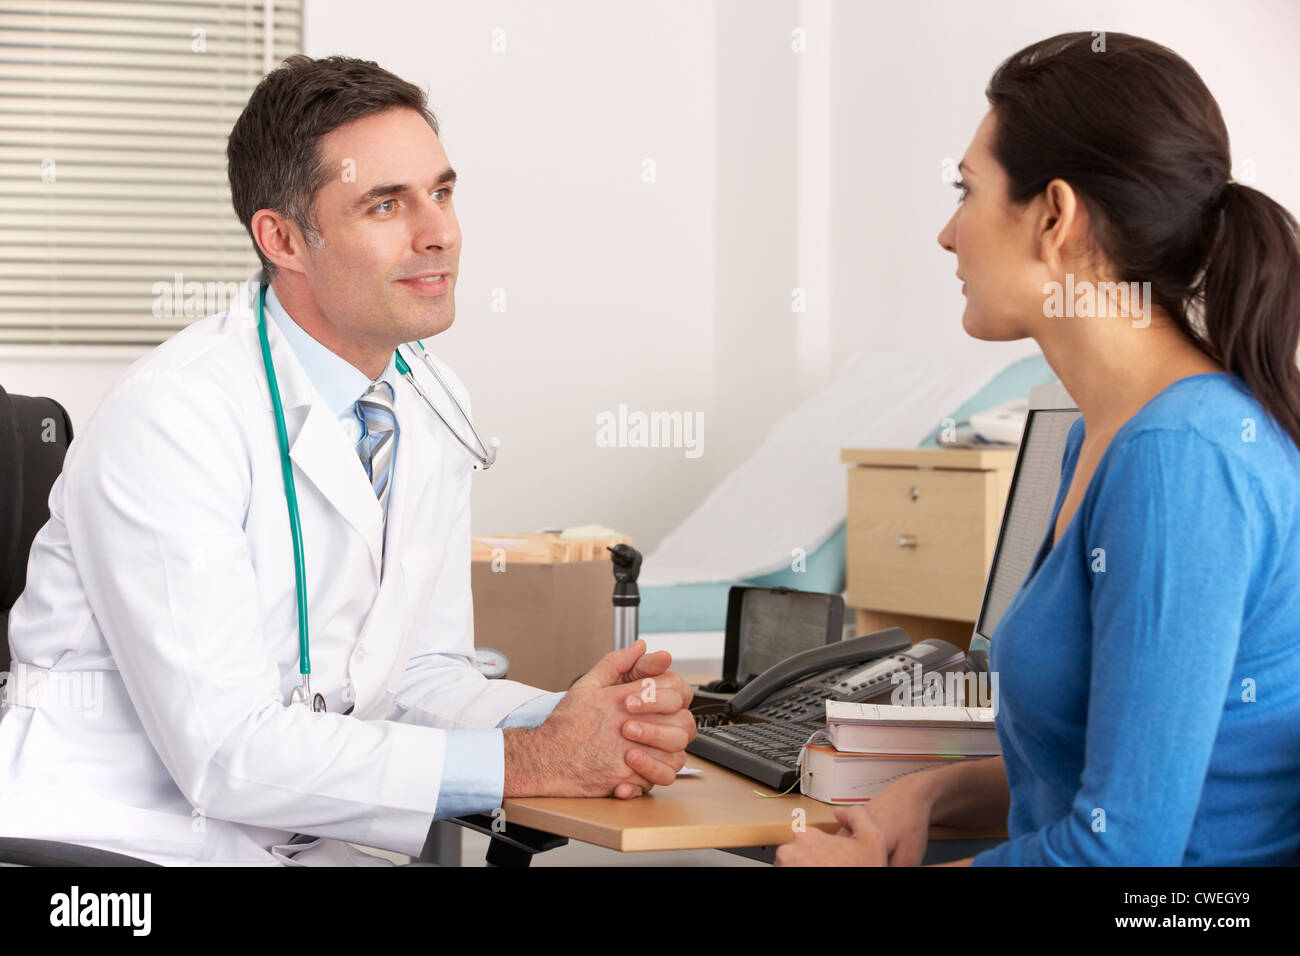 American doctor talking to woman in surgery - Stock Image